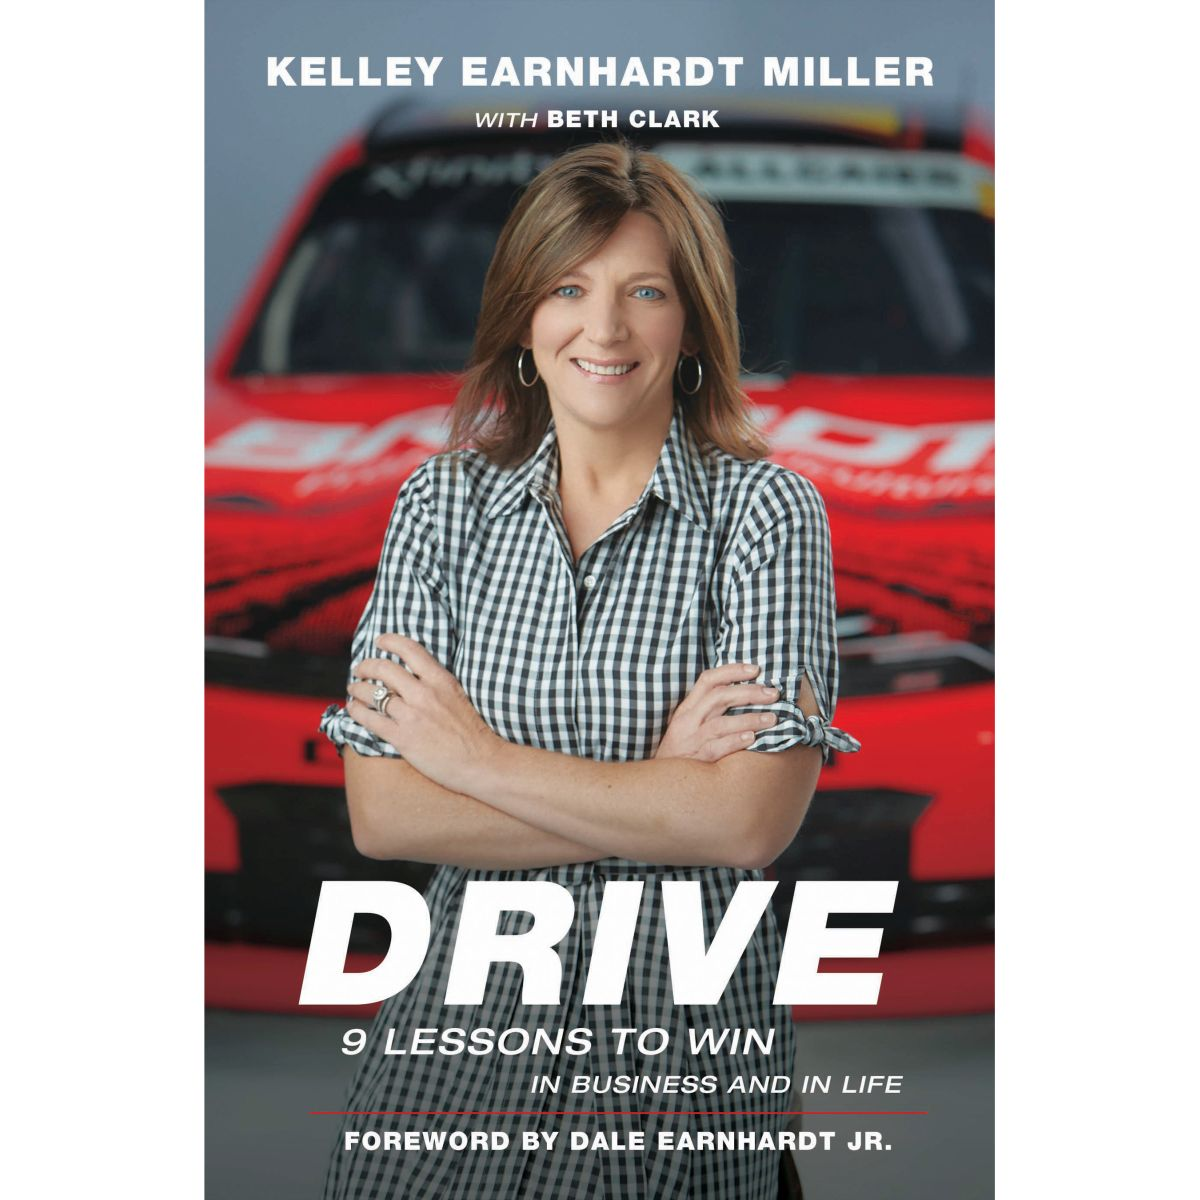 Drive: 9 Lessons To Win In Business & Life by Kelley Earnhardt foreward by Dale Earnhardt Jr. - Autographed by Kelley Earnhardt